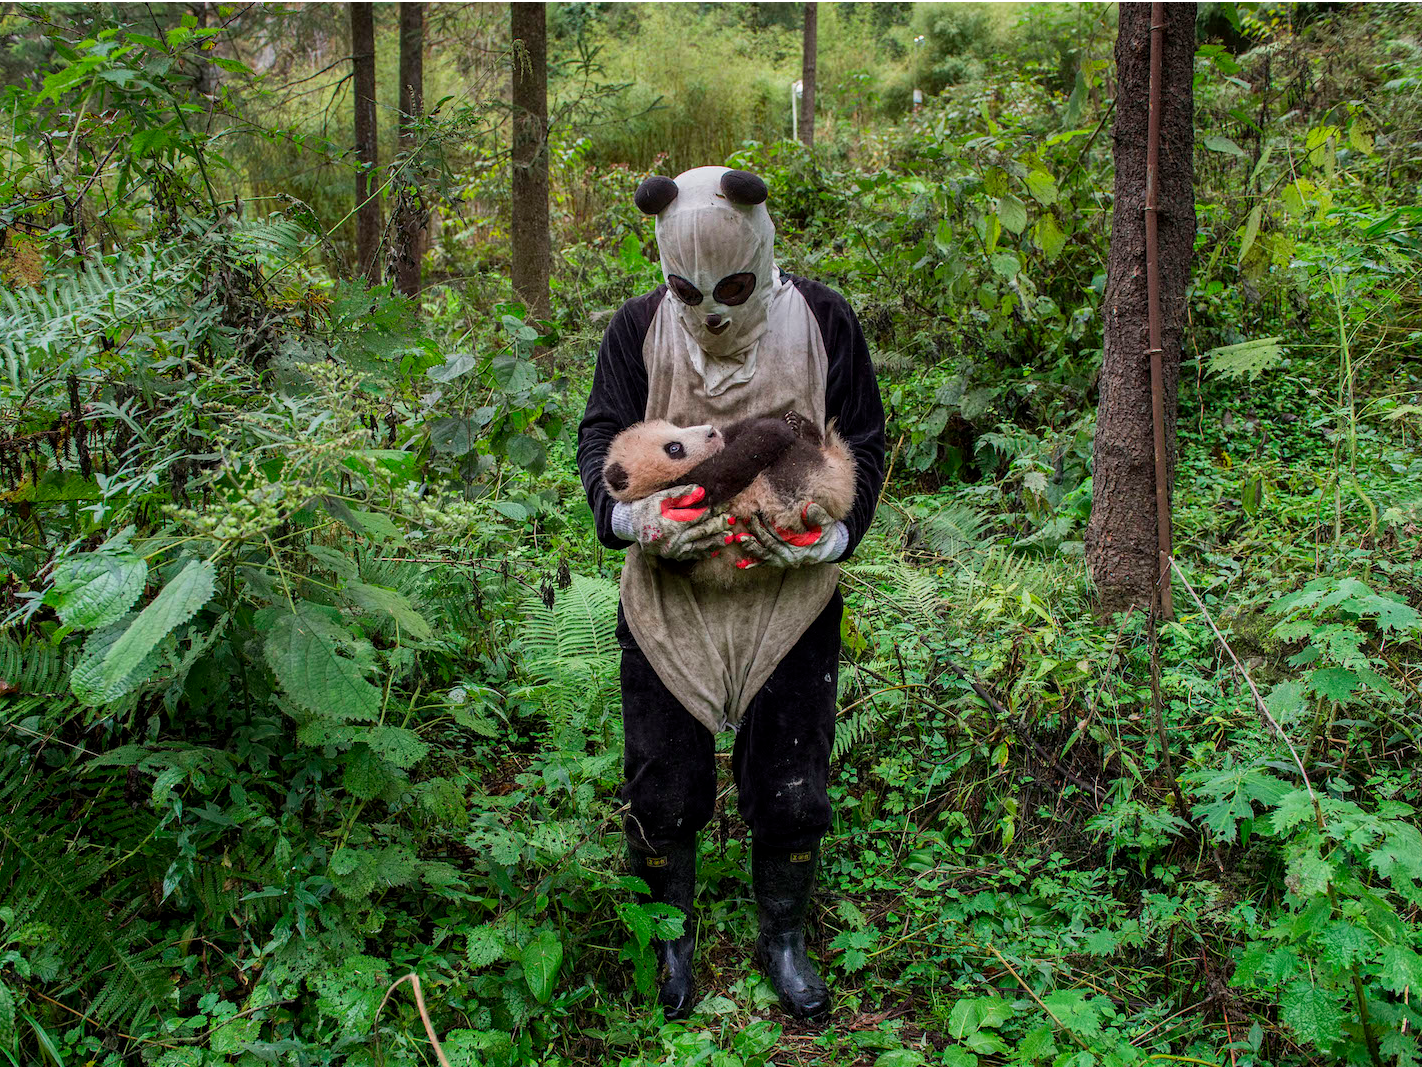 'Pandas Gone Wild' — Ami Vitale (United States of America), Professional, Natural World